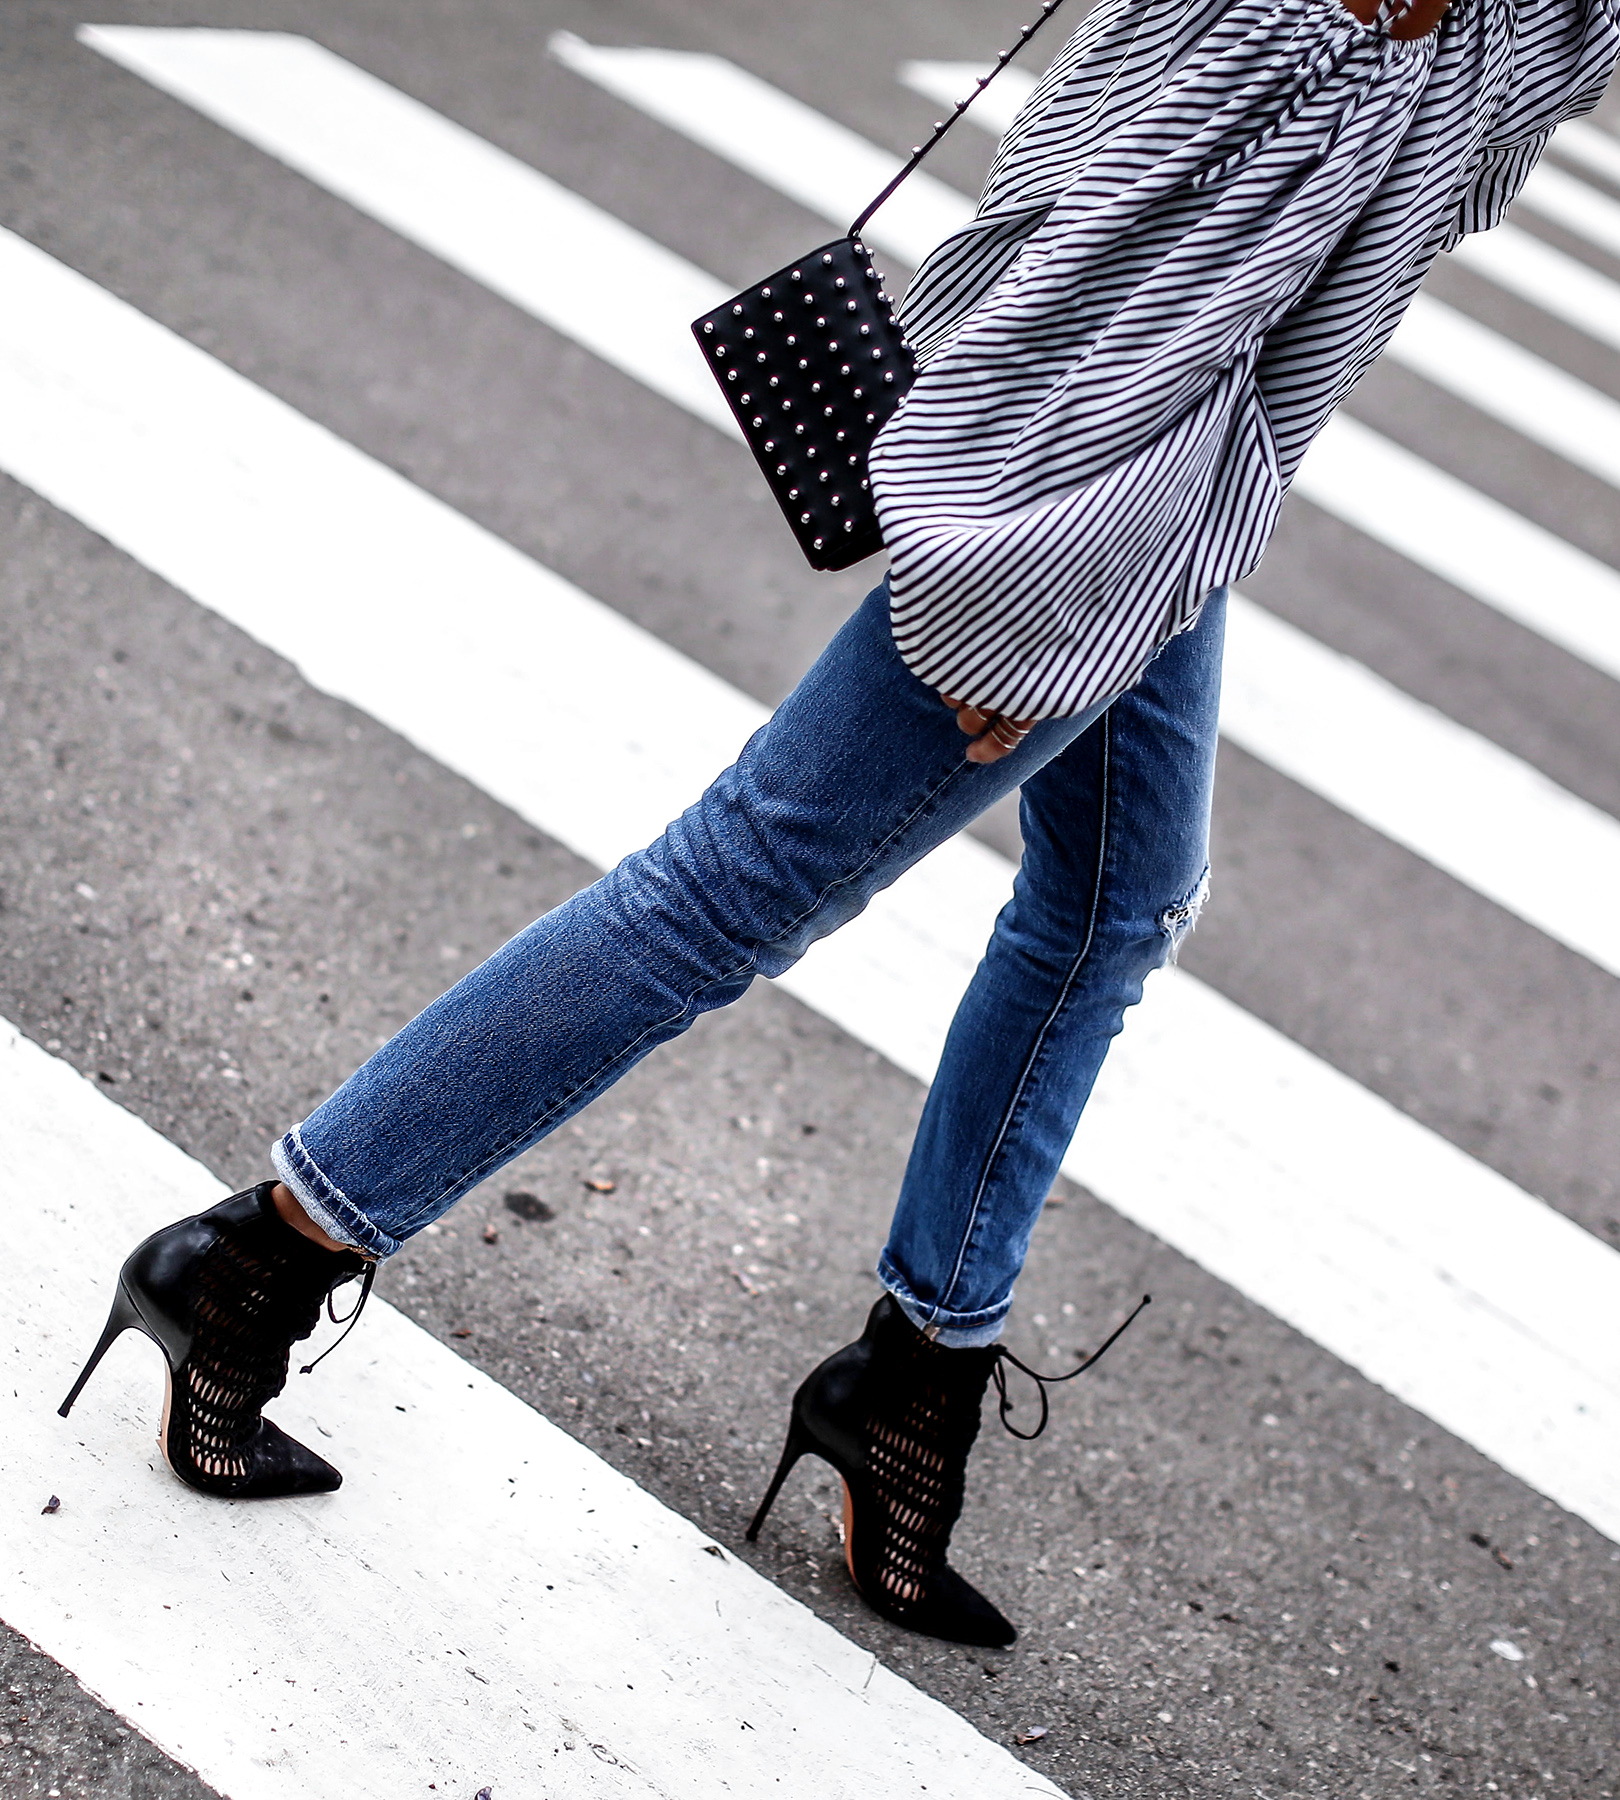 Schutz_Lace_Up_Booties_Distressed_Levis_Jeans_MLM_Striped_Off_The_Shoulder_Top_Alexander_Wang_Studded_Bag.jpg